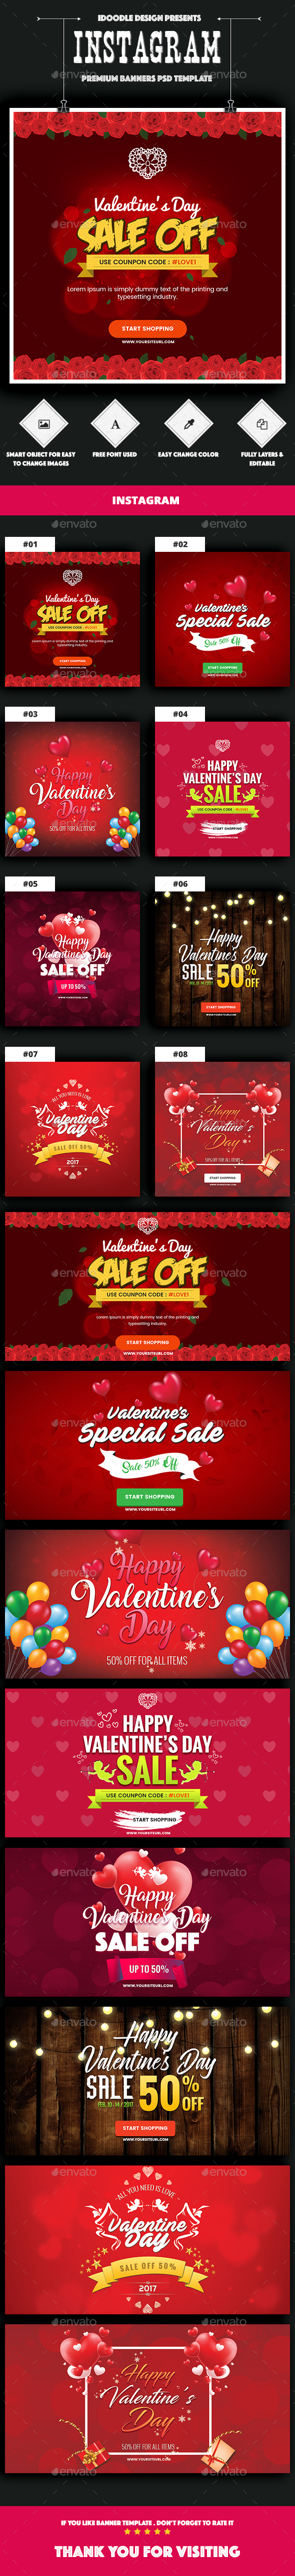 NewsFeed Valentine's Day Banner Ads - 16 PSD [02 Size Each] - Banners & Ads Web Elements